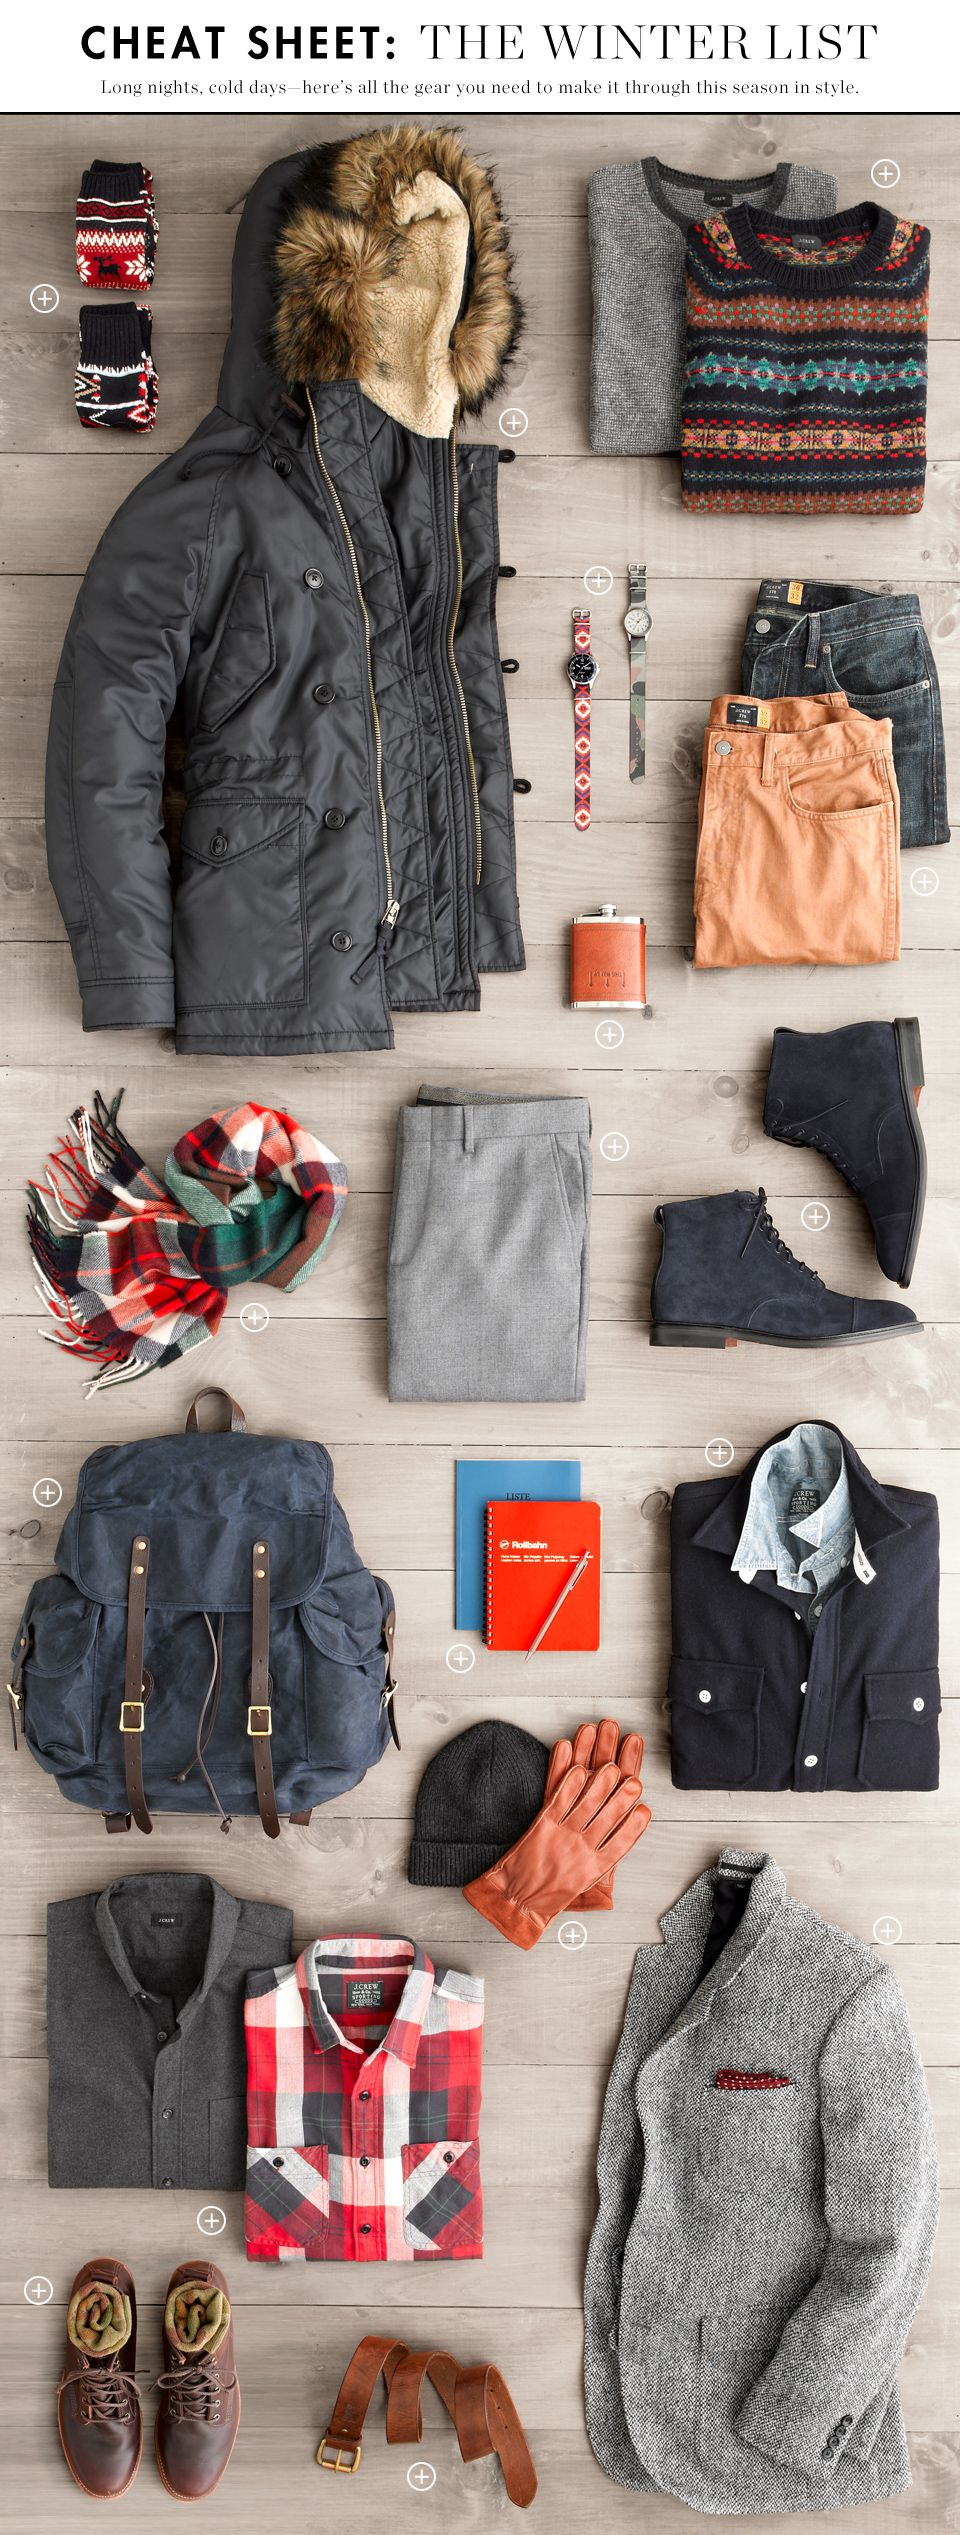 4989b4c8c54 The Winter cheat sheet for menswear from  jcrew